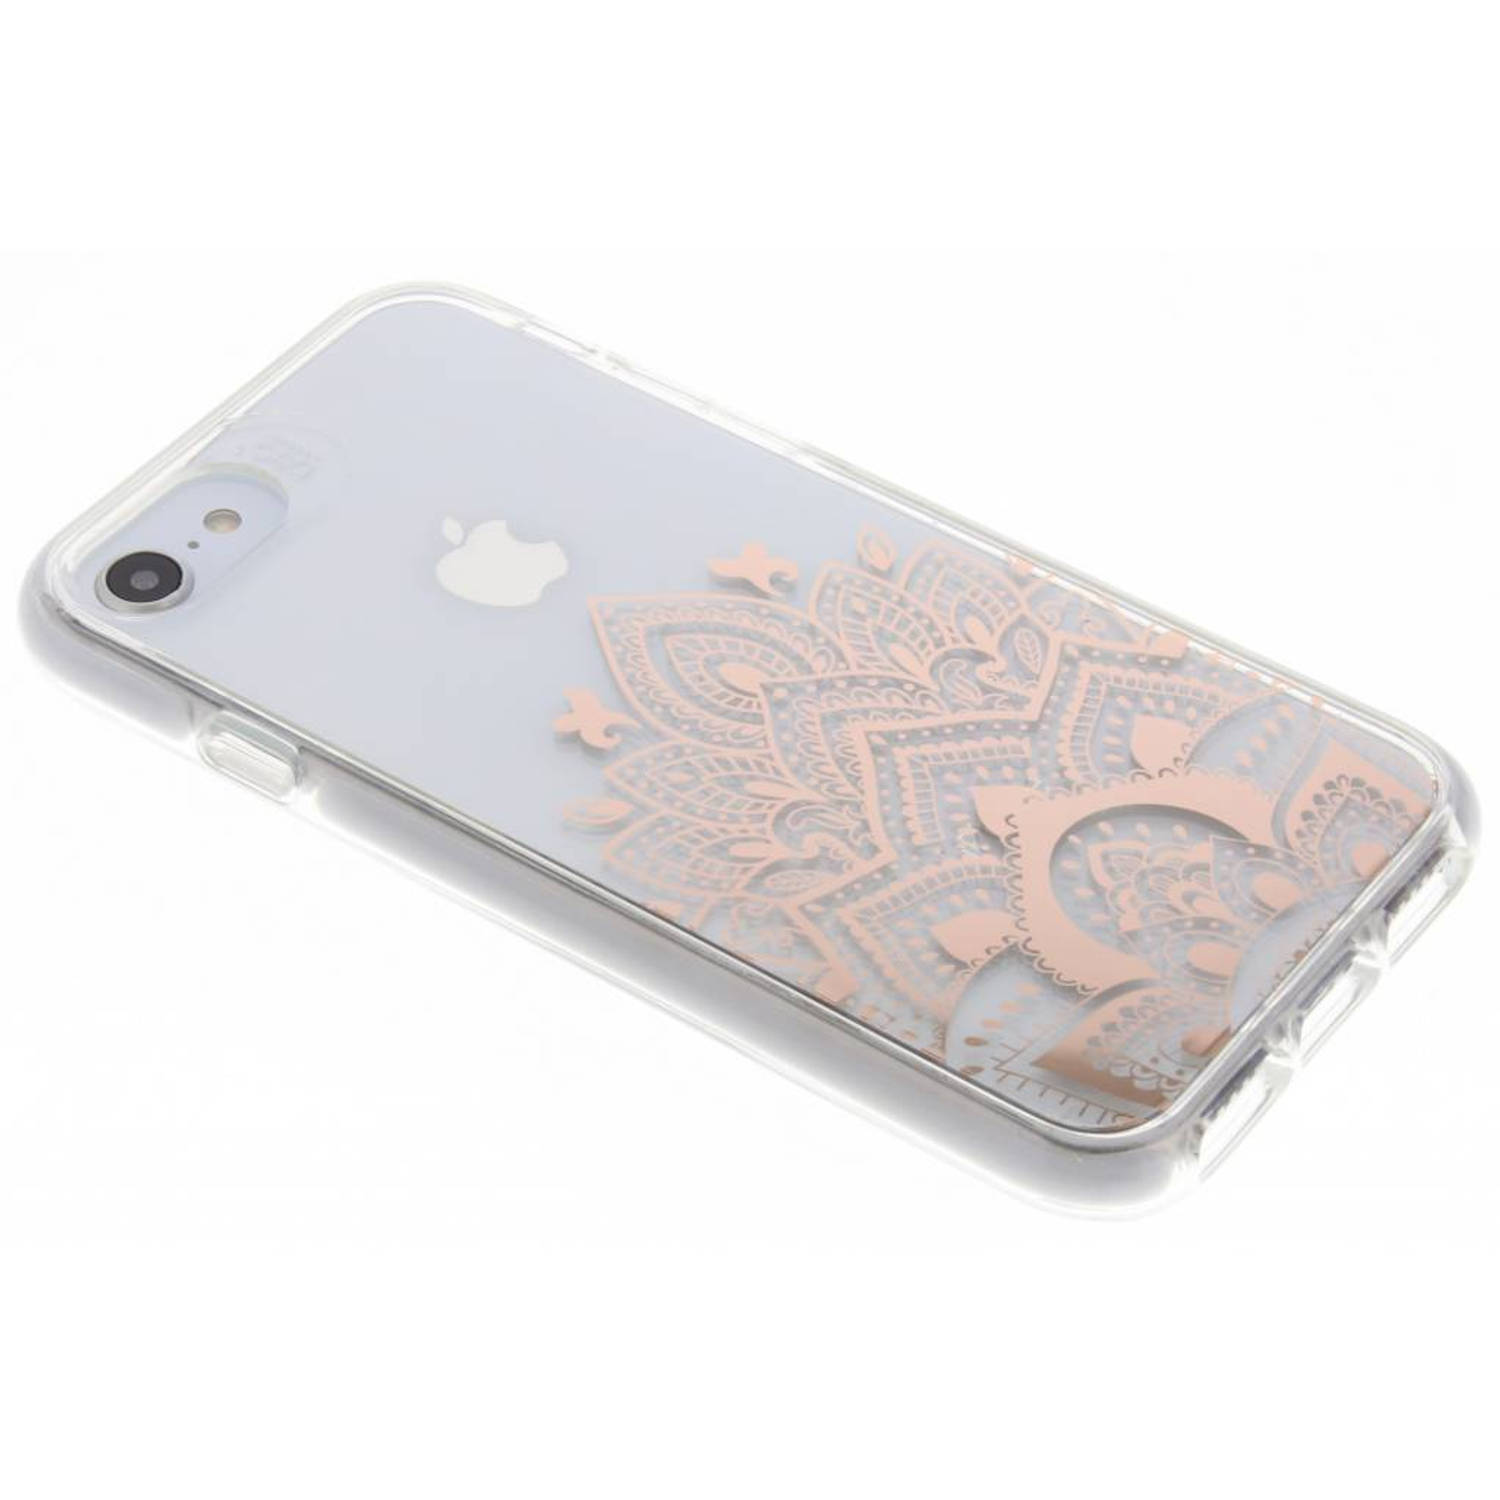 Mandala Victoria Case voor de iPhone 8 / 7 / 6 / 6s